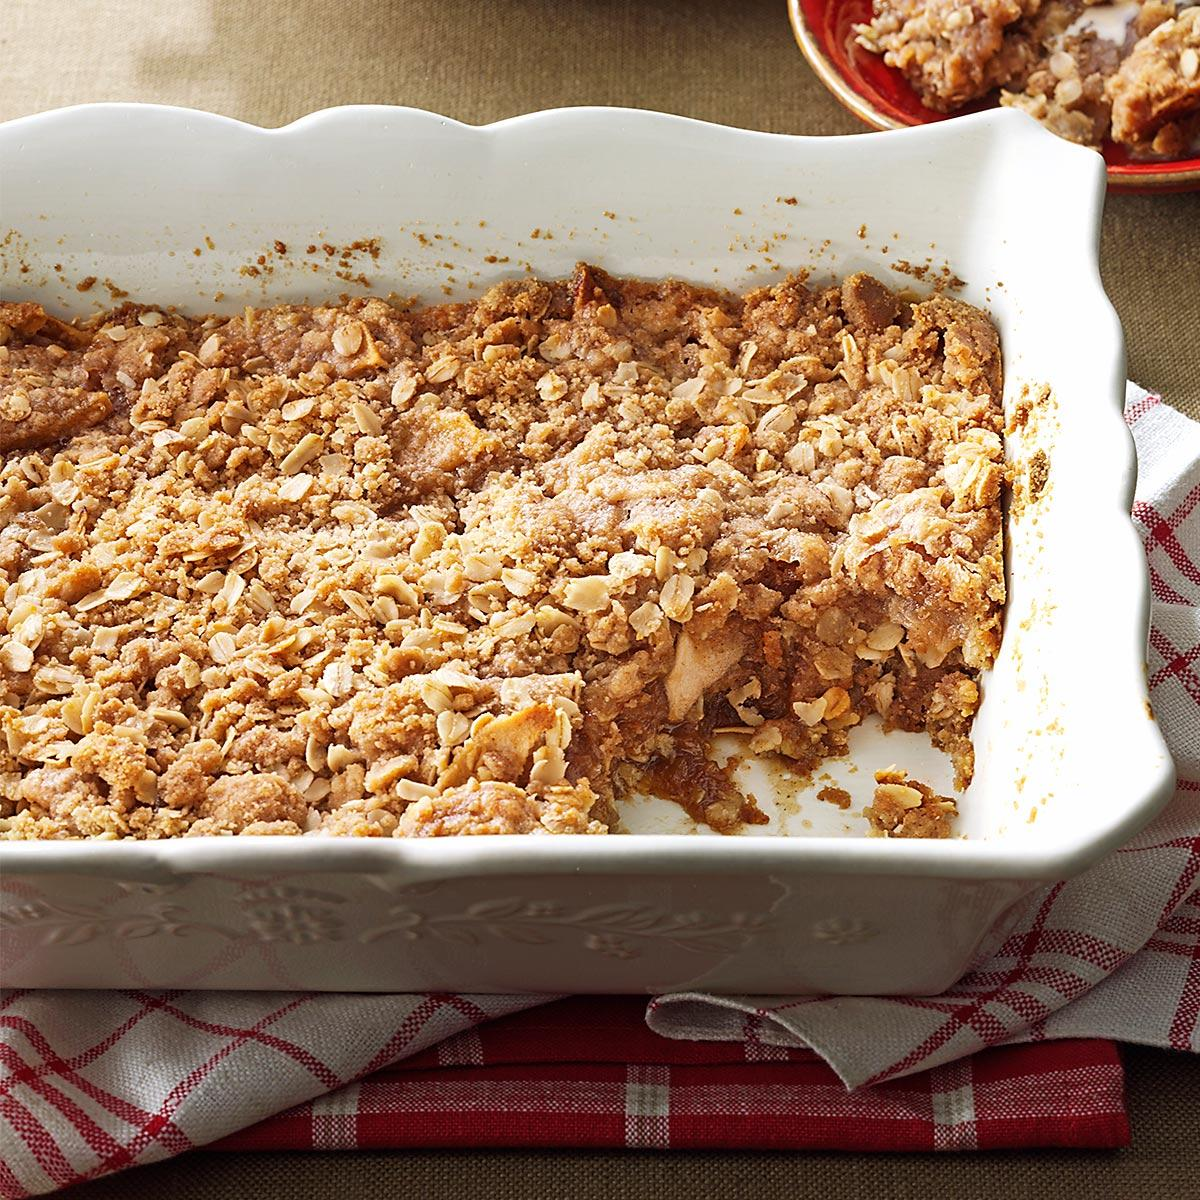 Two Layered Apple Crisp Recipe How To Make It Taste Of Home